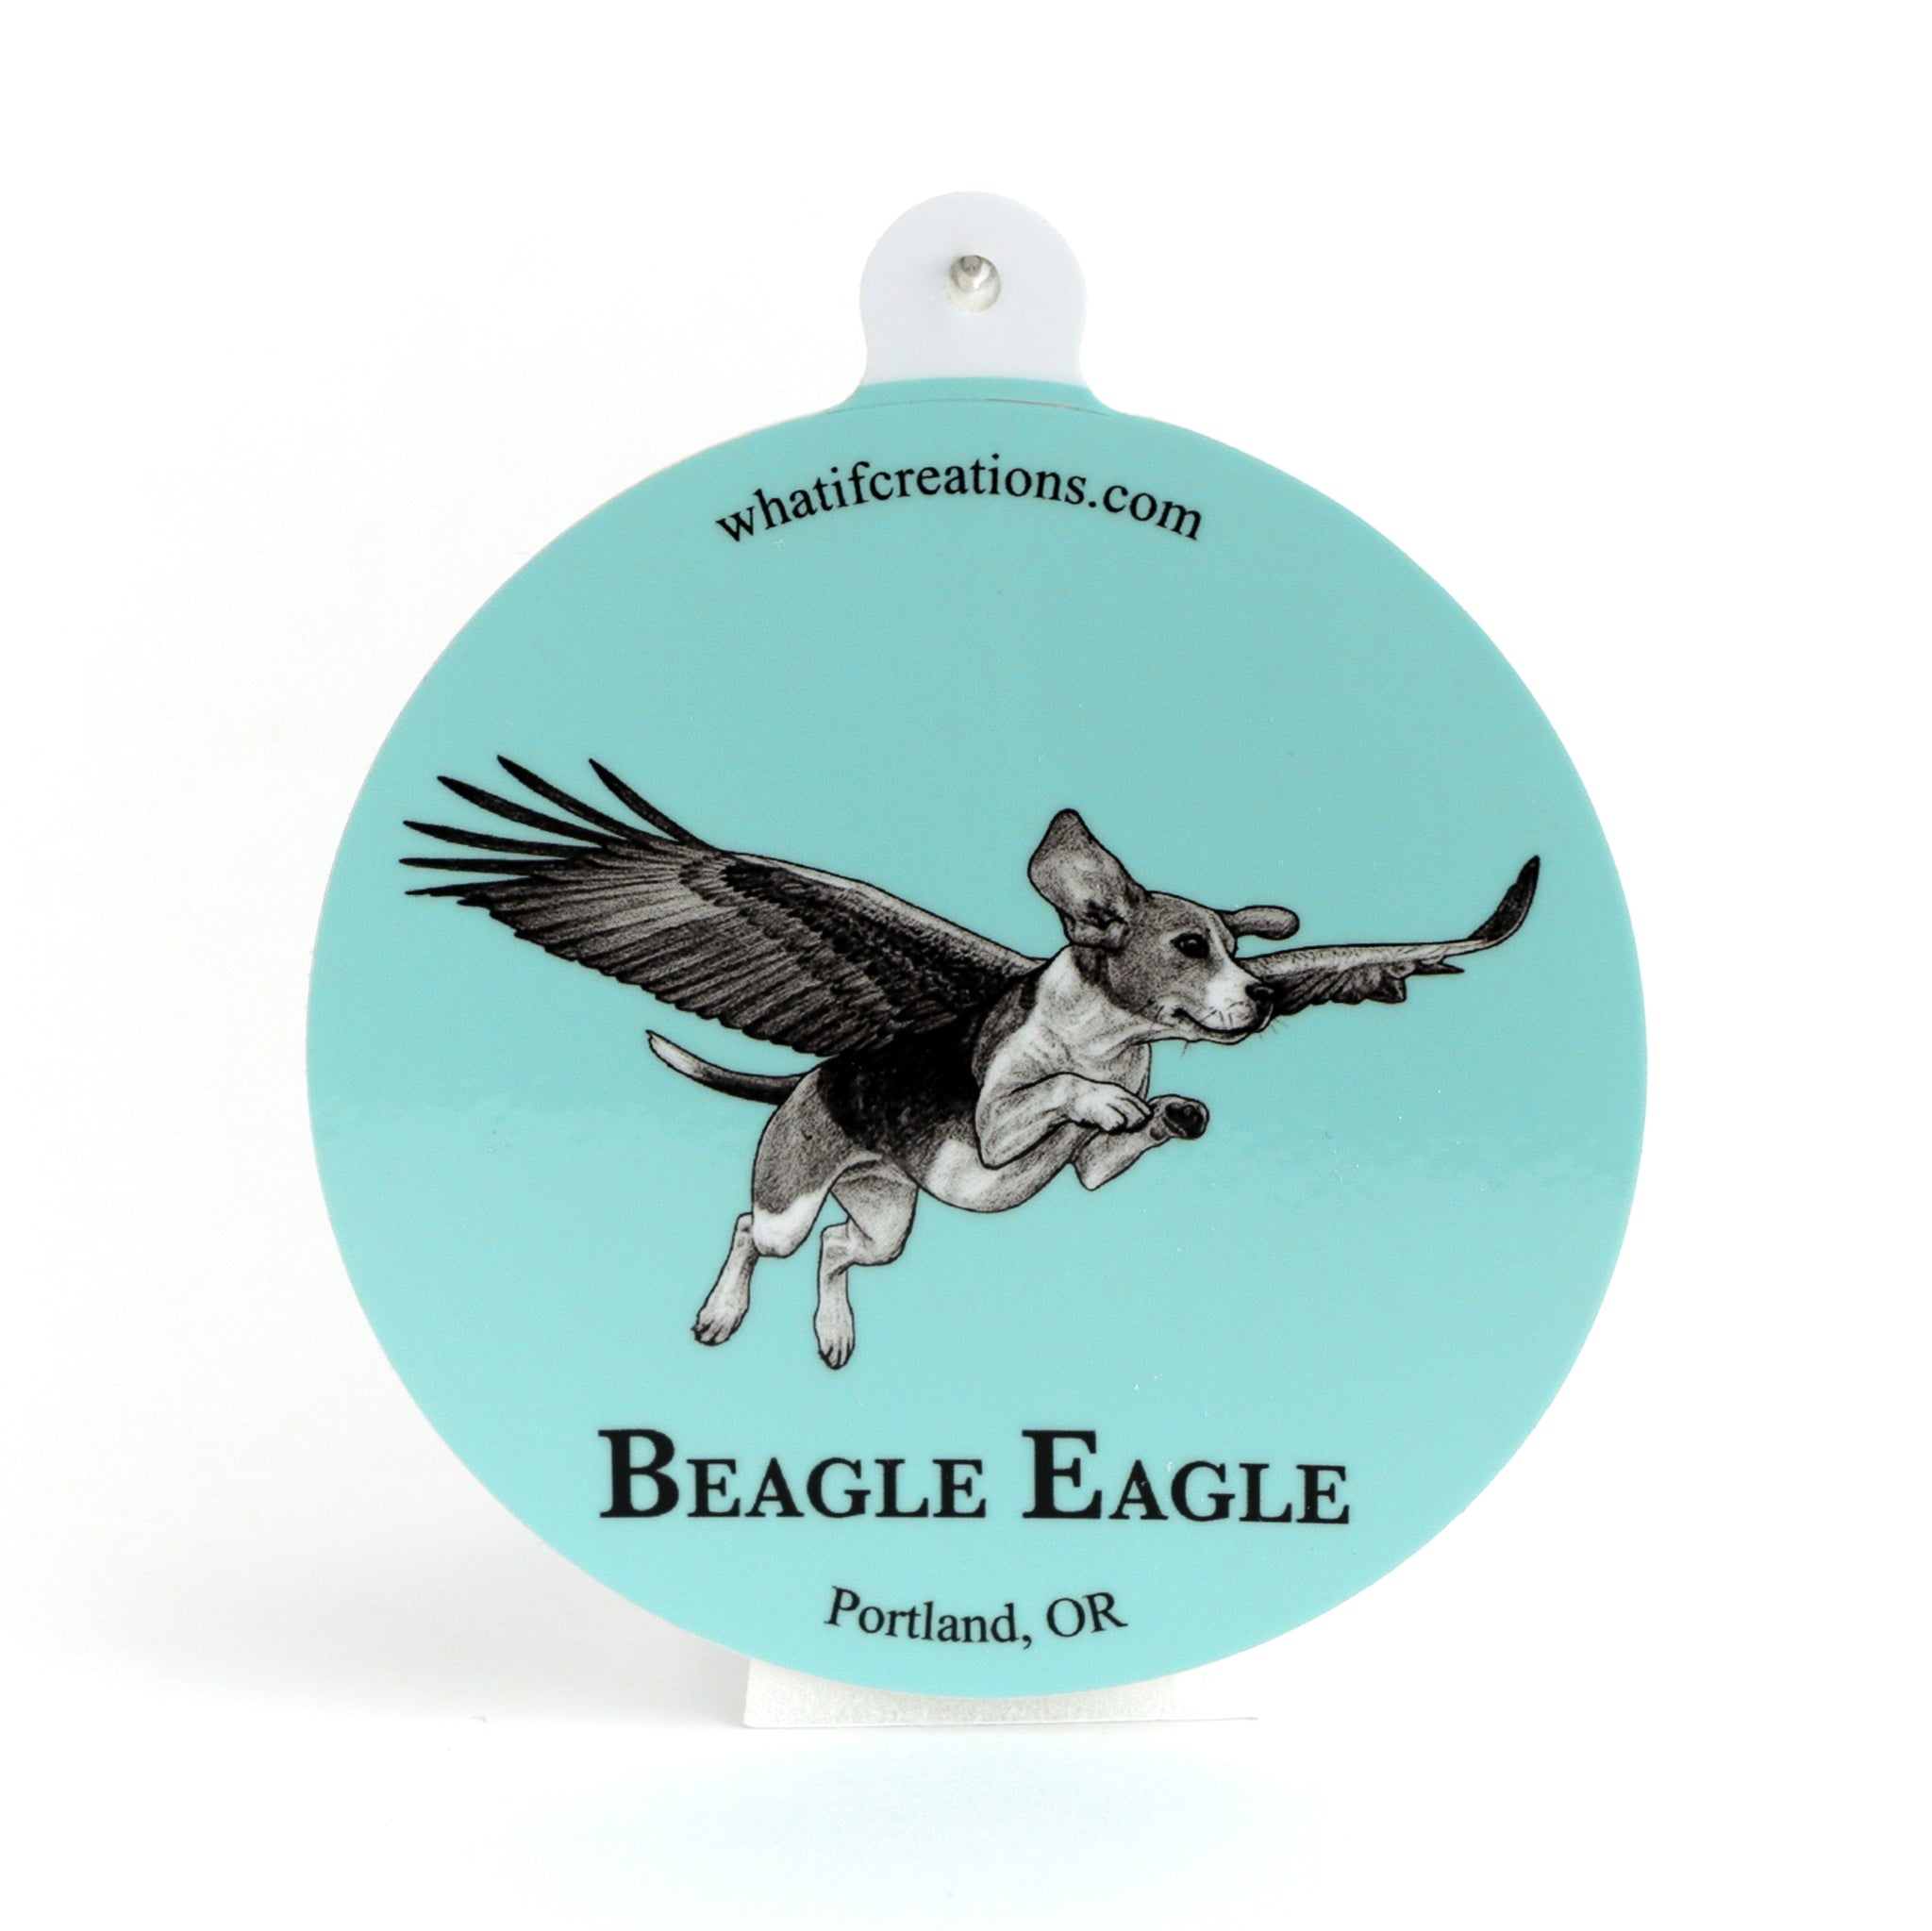 "Beagle Eagle 3"" Vinyl Sticker"